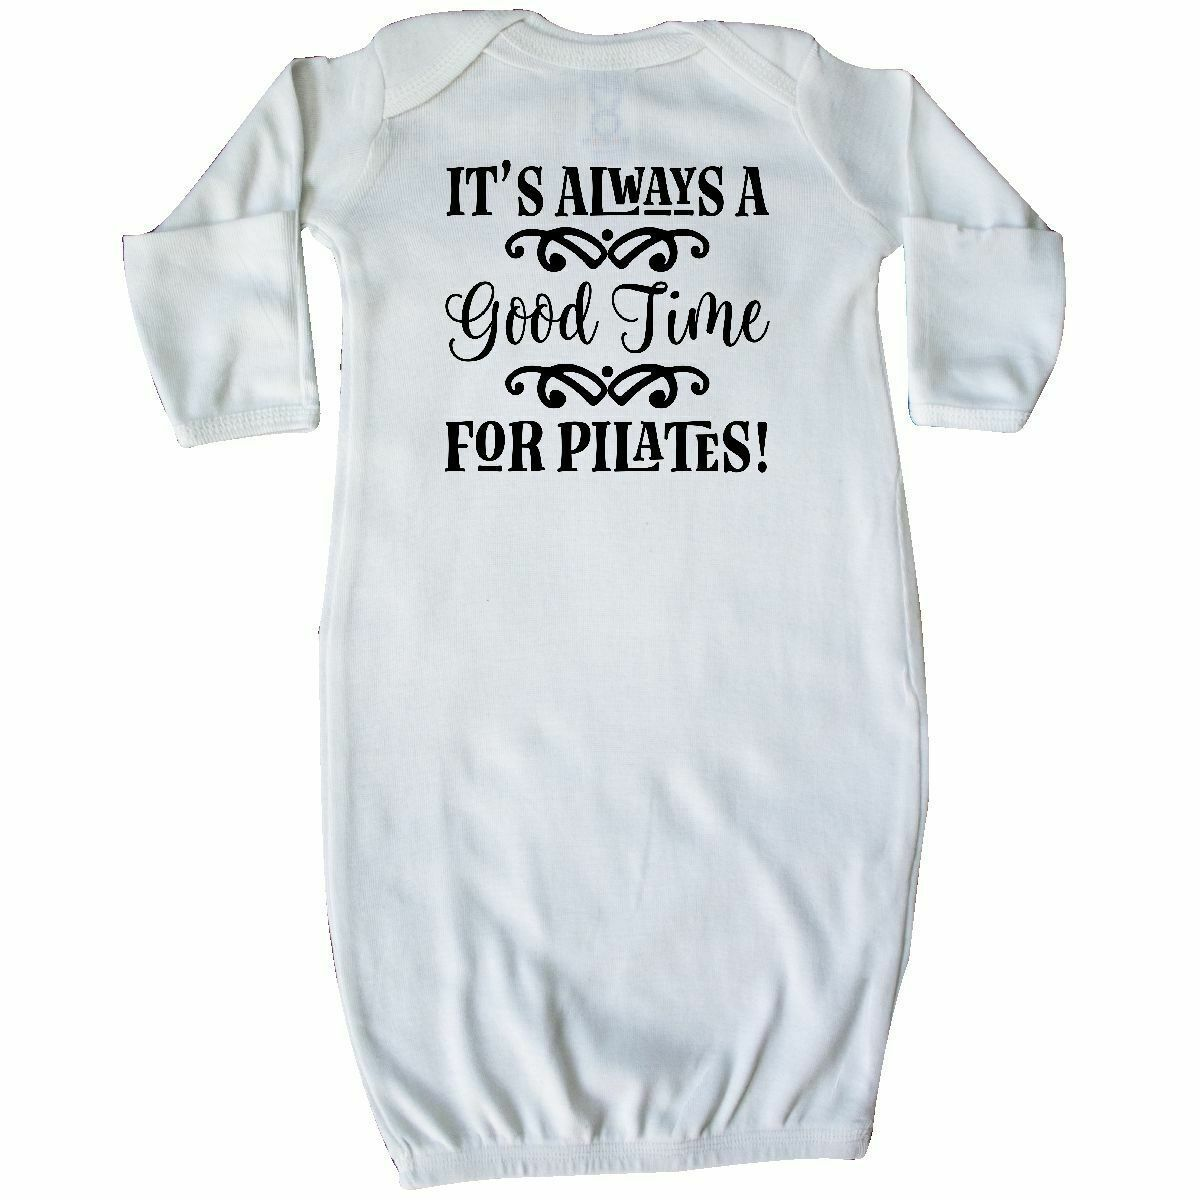 #Exercise #Fit #Fitness #fitnessoutfit #Gift #Hws #Inktastic #Layette #Newborn